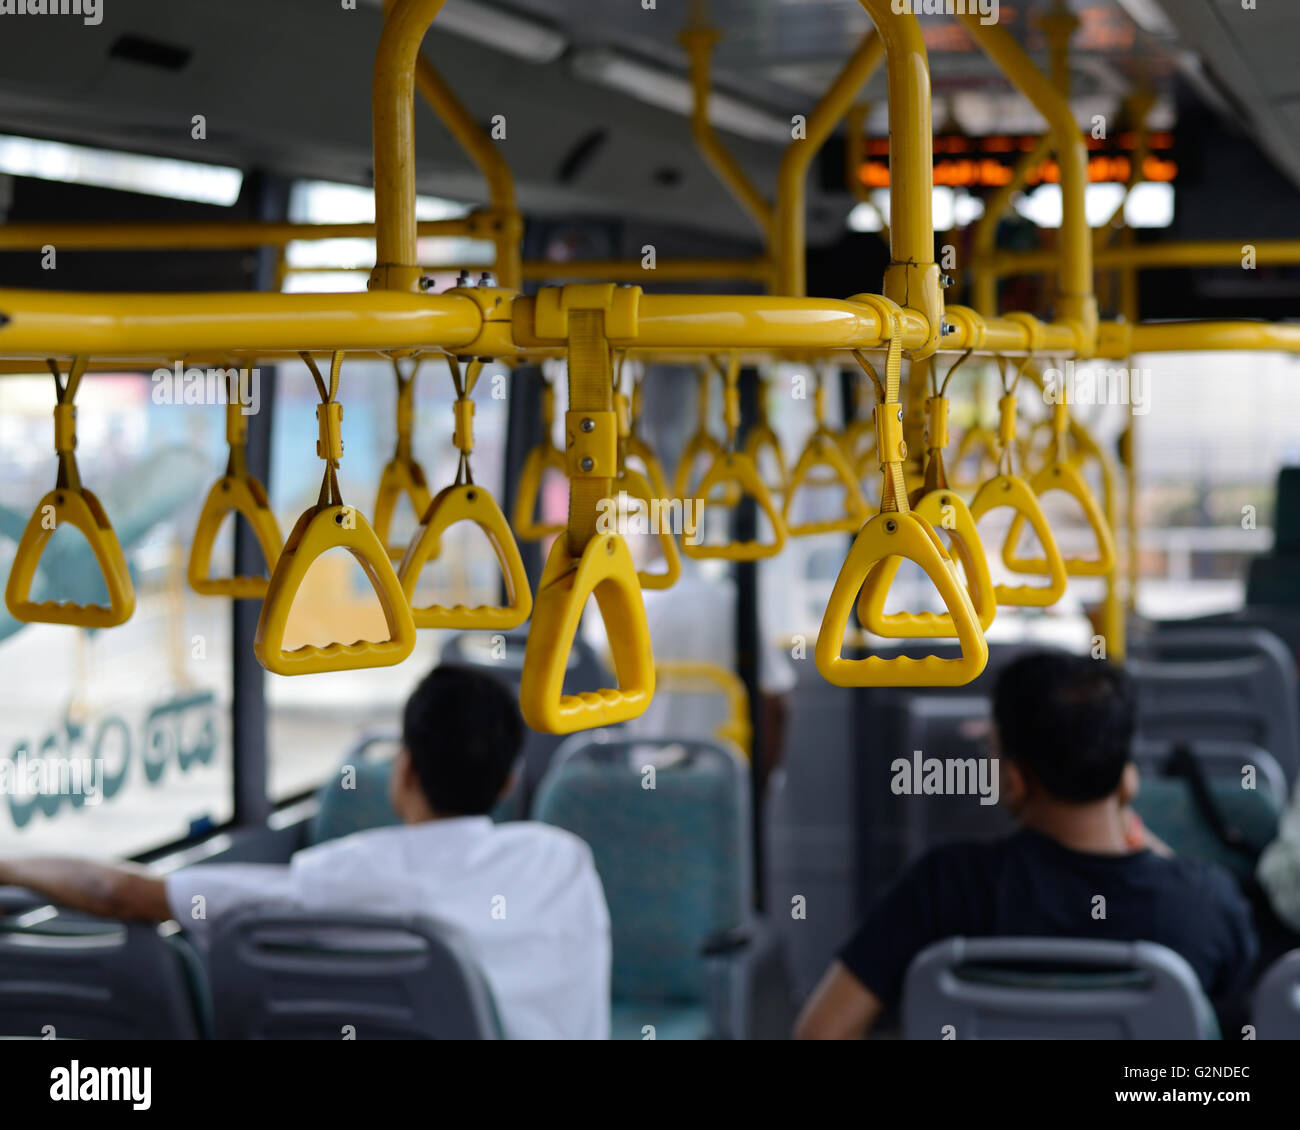 Straps to  hold to maintain balance in a commuter bus - Stock Image